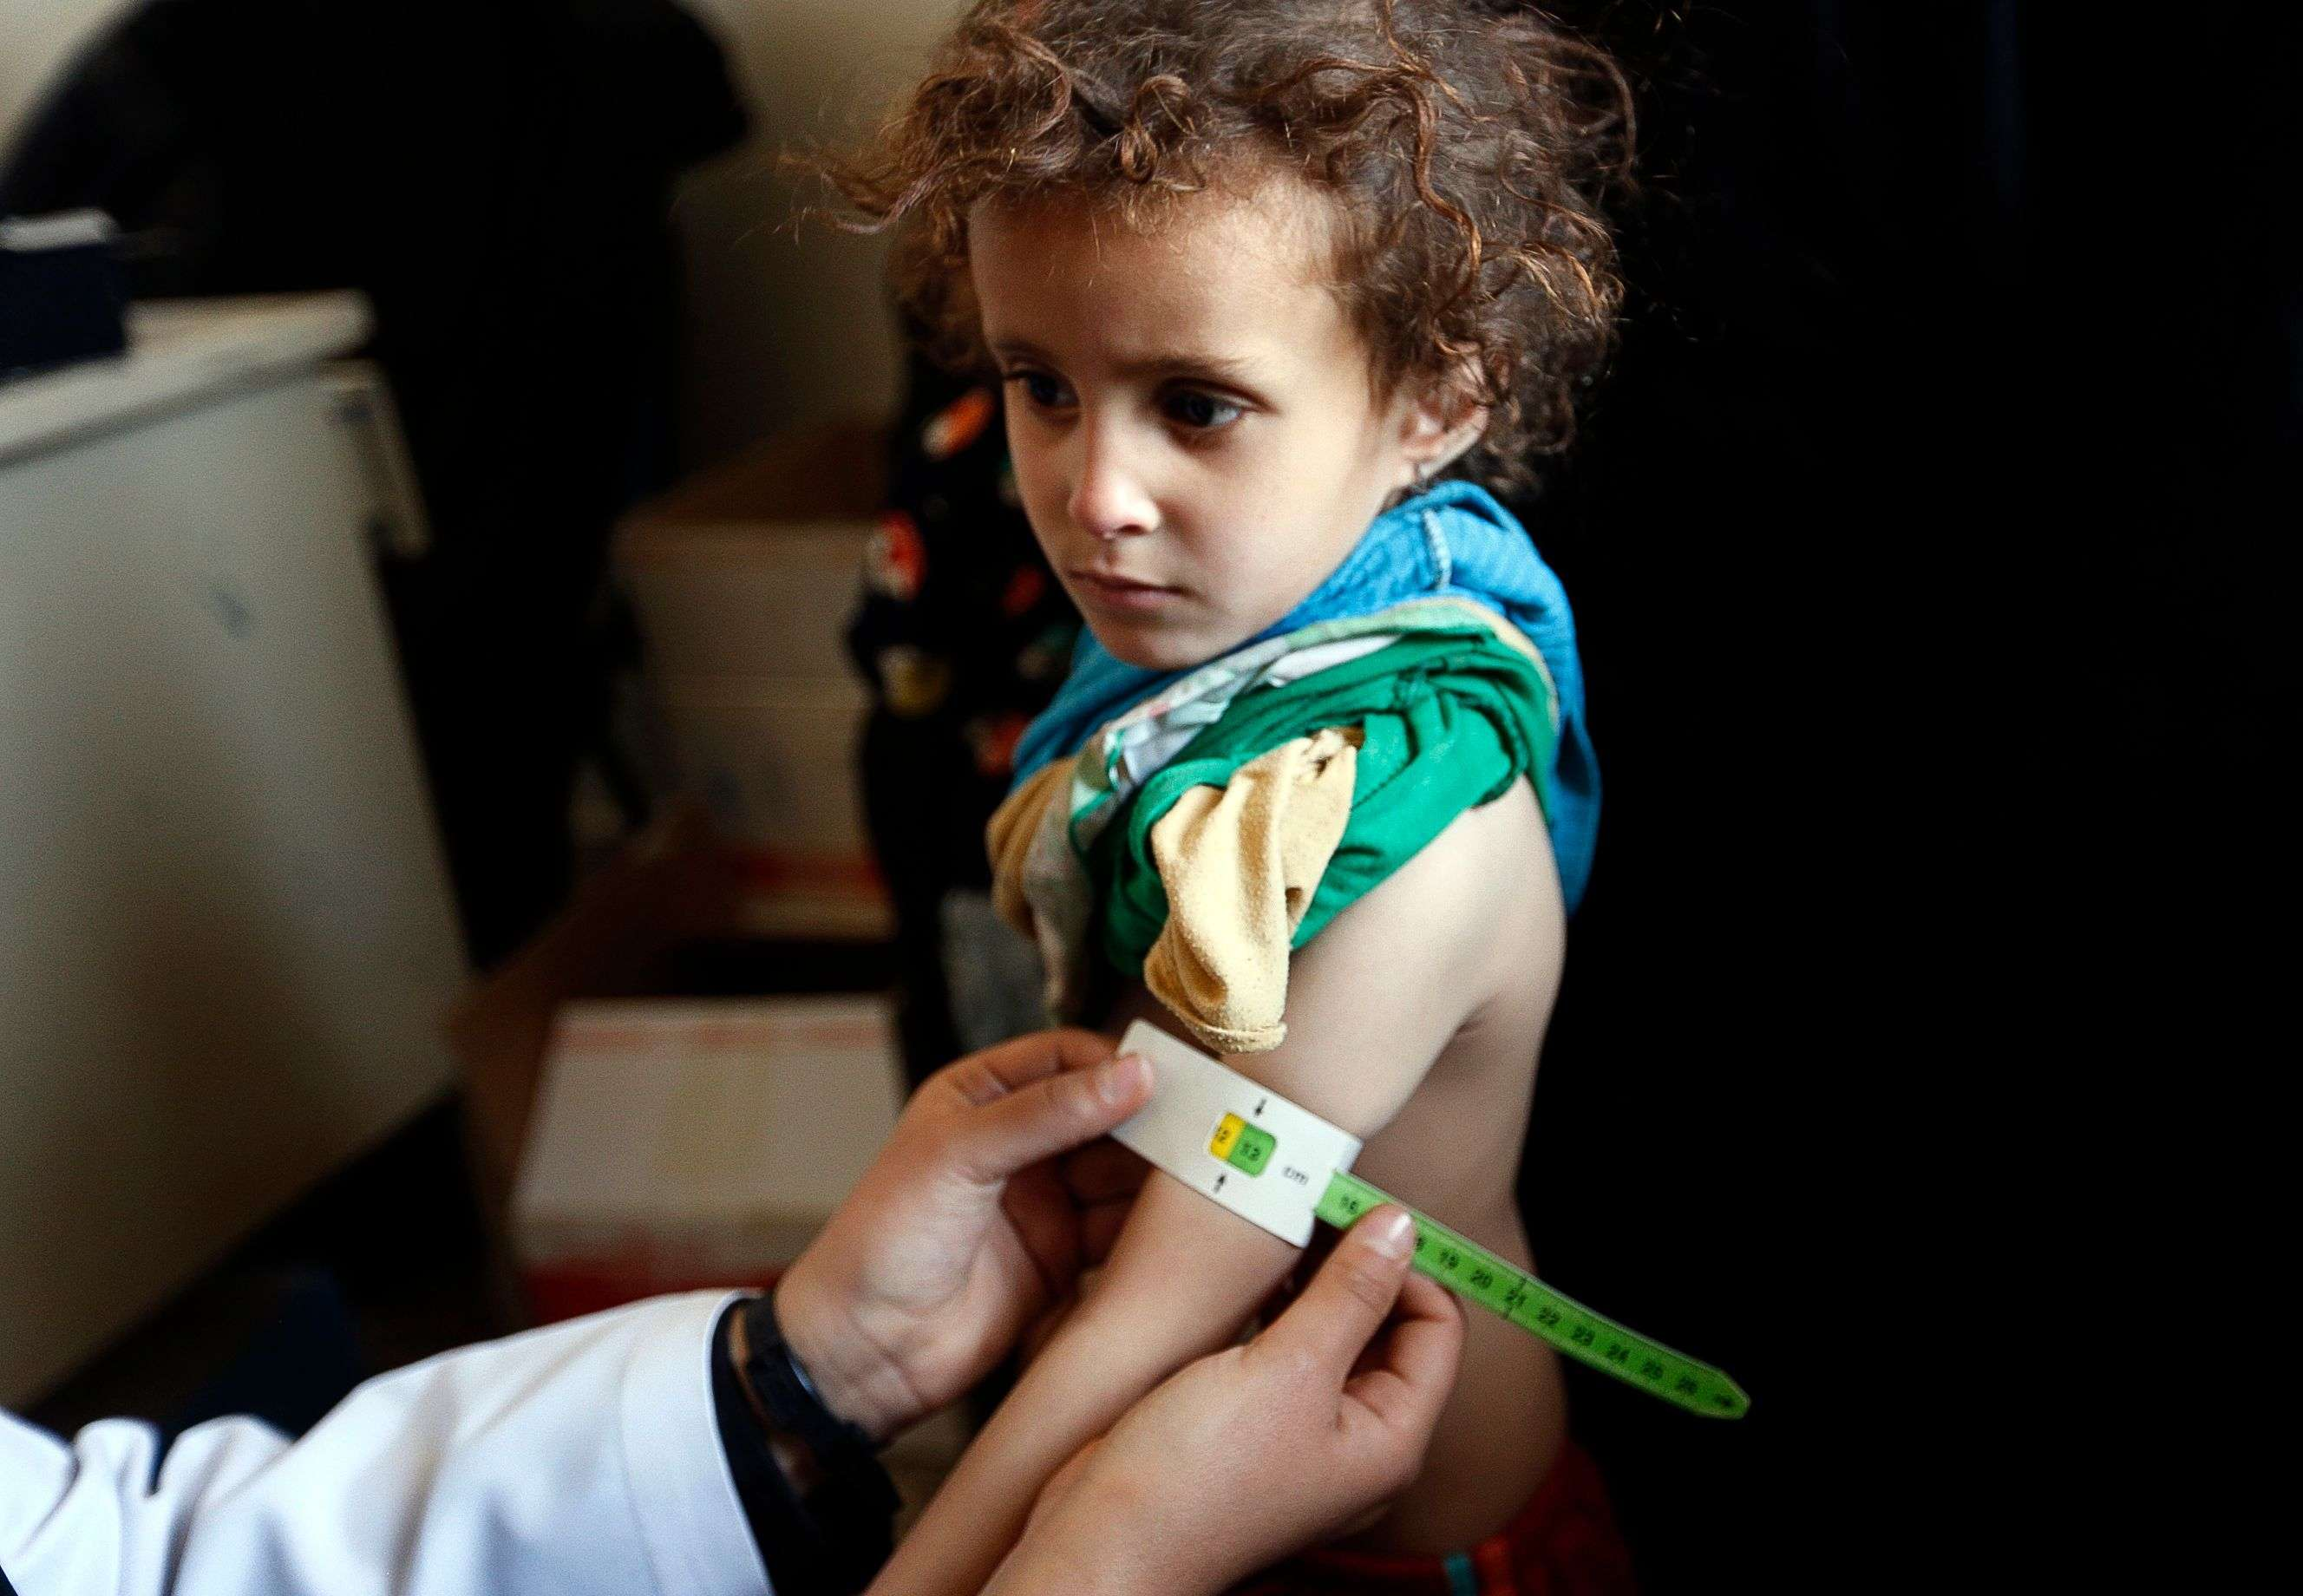 A Yemeni infant suffering from malnutrition is weighed and measured at a medical centre in Bani Hawat, on the outskirts of Sanaa. (AFP)